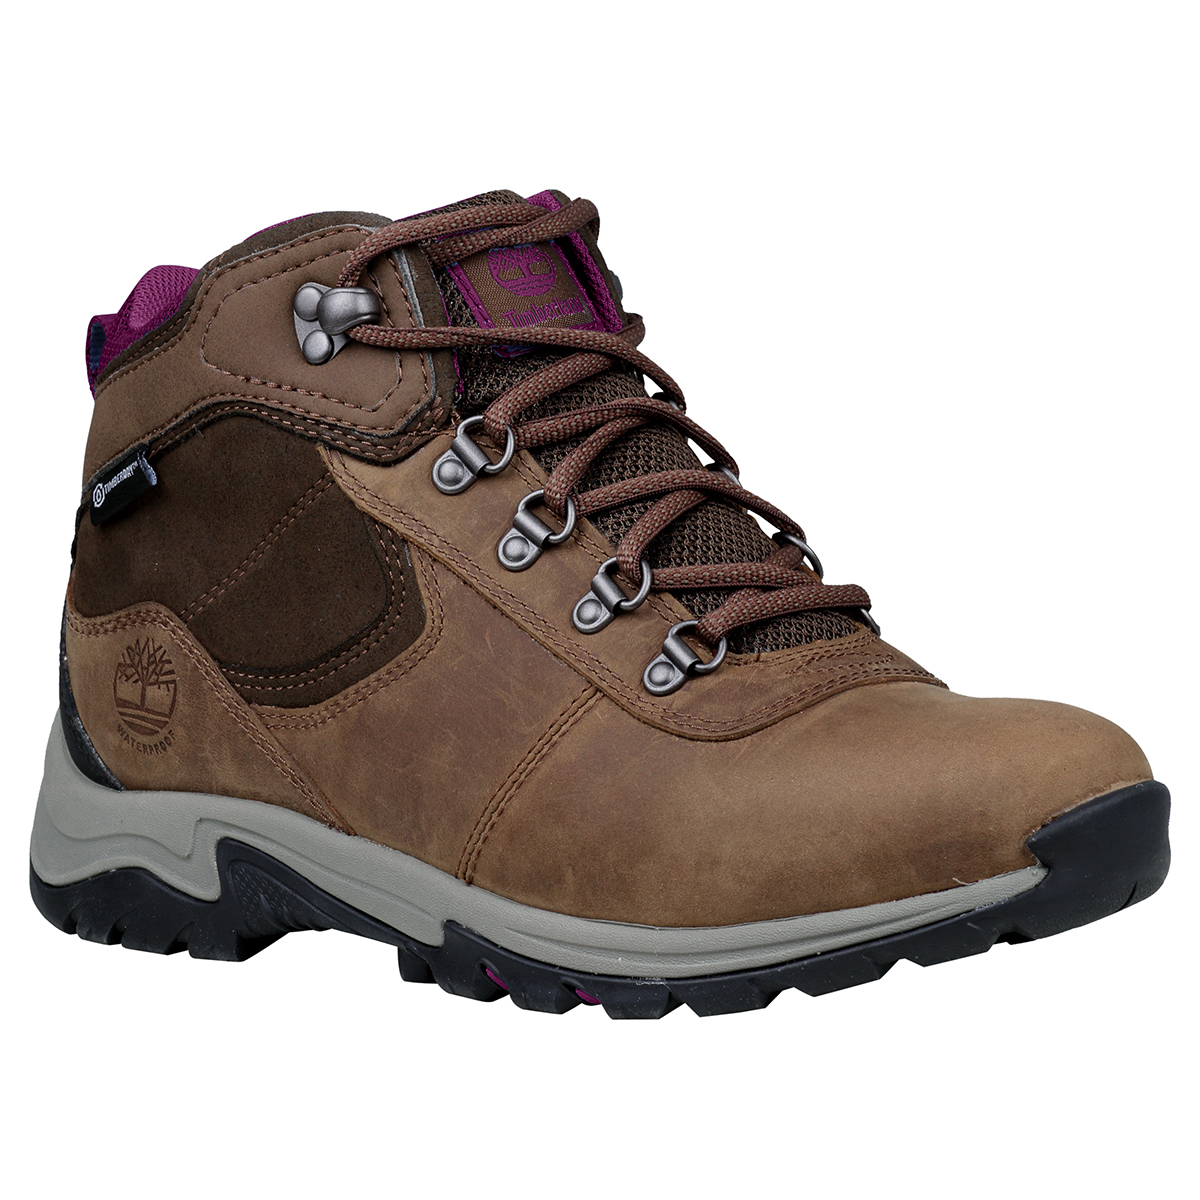 Timberland Women's Mt. Maddsen Mid Waterproof Hiking Boot - Brown, 6.5